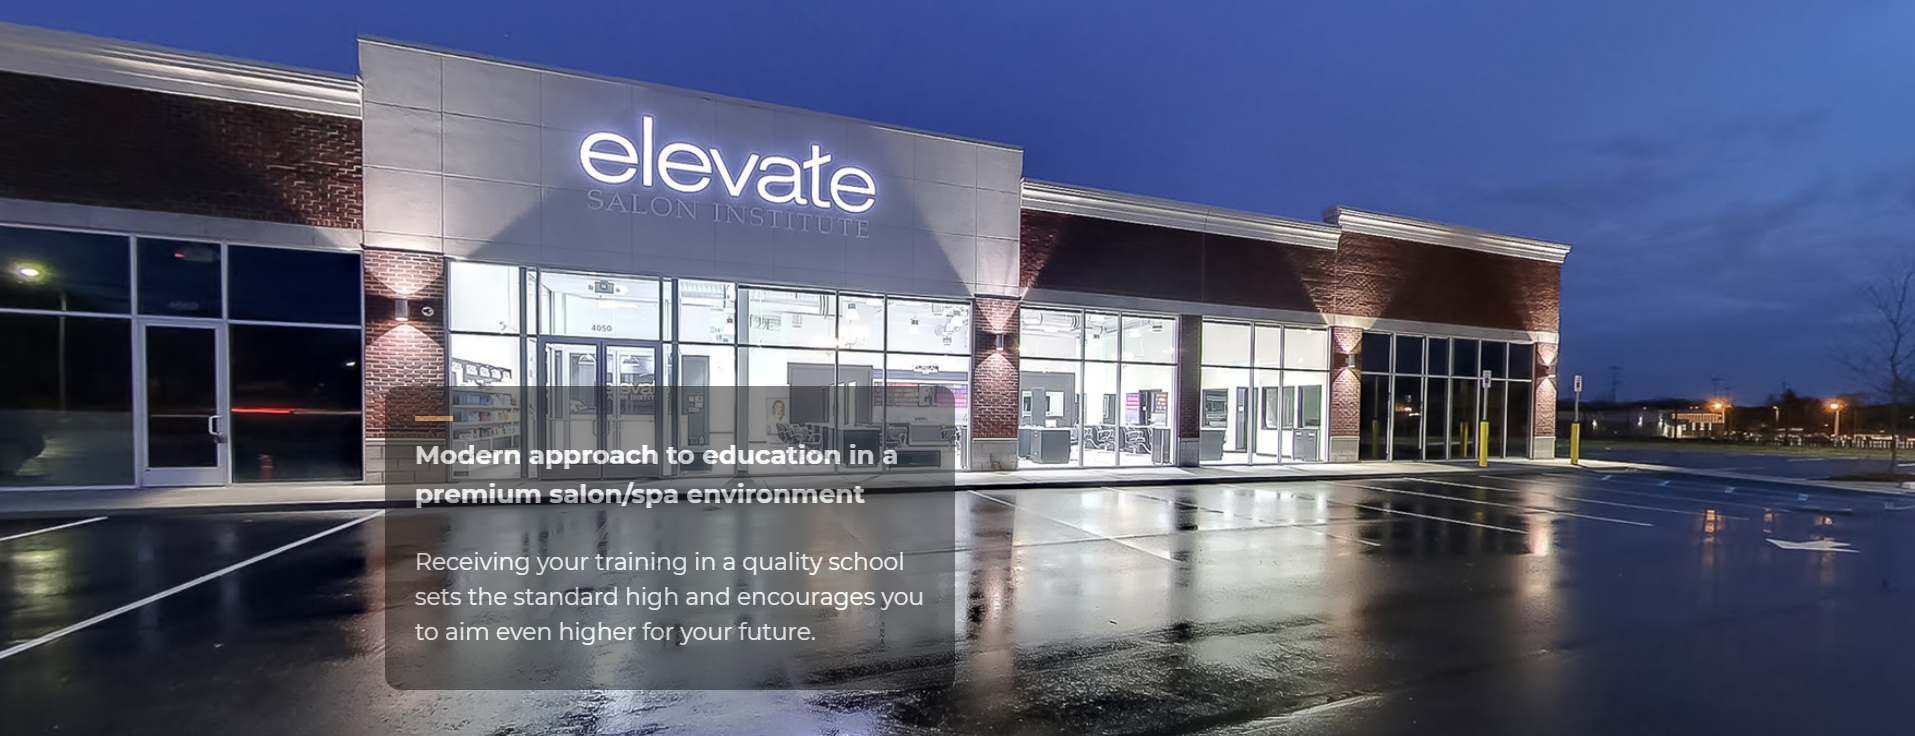 Elevate Salon Institute in Durham